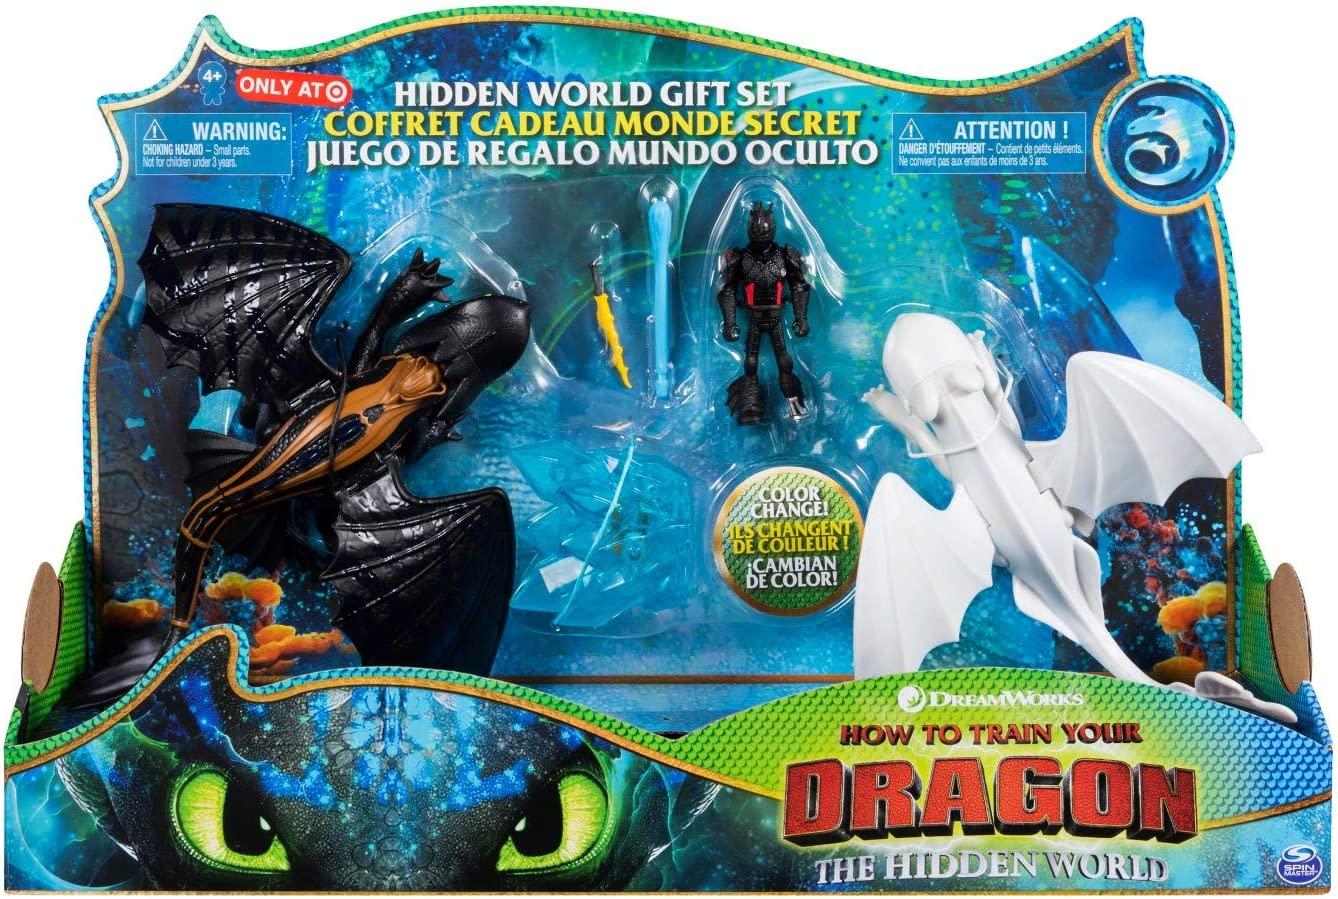 Amazon Com How To Train Your Dragon 3 The Hidden World Gift Set Toothless And Lightfury Dragons With Hiccup And Color Change Reveal Crysta Toys Games 1920x1080 toothless, night fury, how to train your dragon, how to train your dragon 2, dragon, fish, movies wallpapers hd / desktop and mobile backgrounds. how to train your dragon 3 the hidden world gift set toothless and lightfury dragons with hiccup and color change reveal crysta